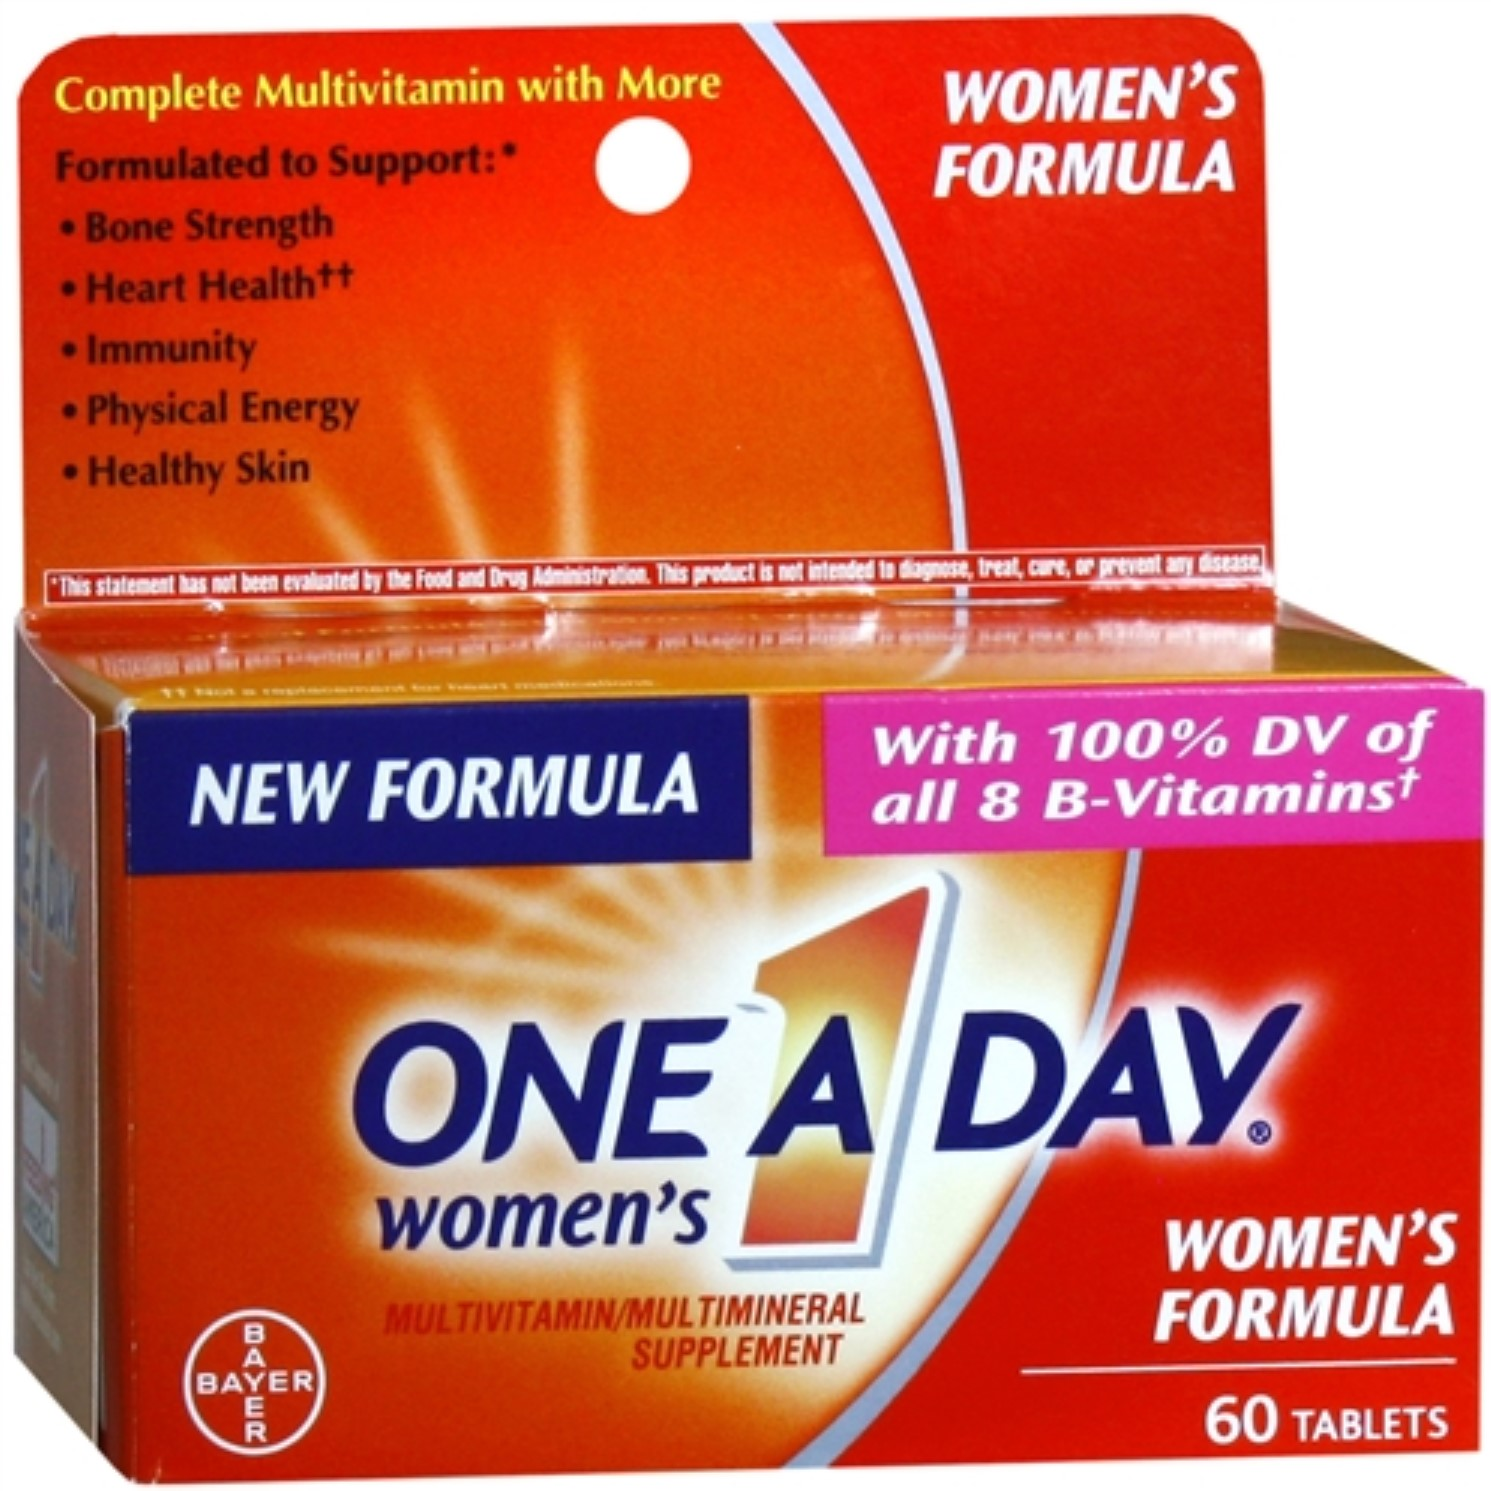 One-A-Day Women's Formula Vitamins, Tablets 60 ea (Pack of 4)